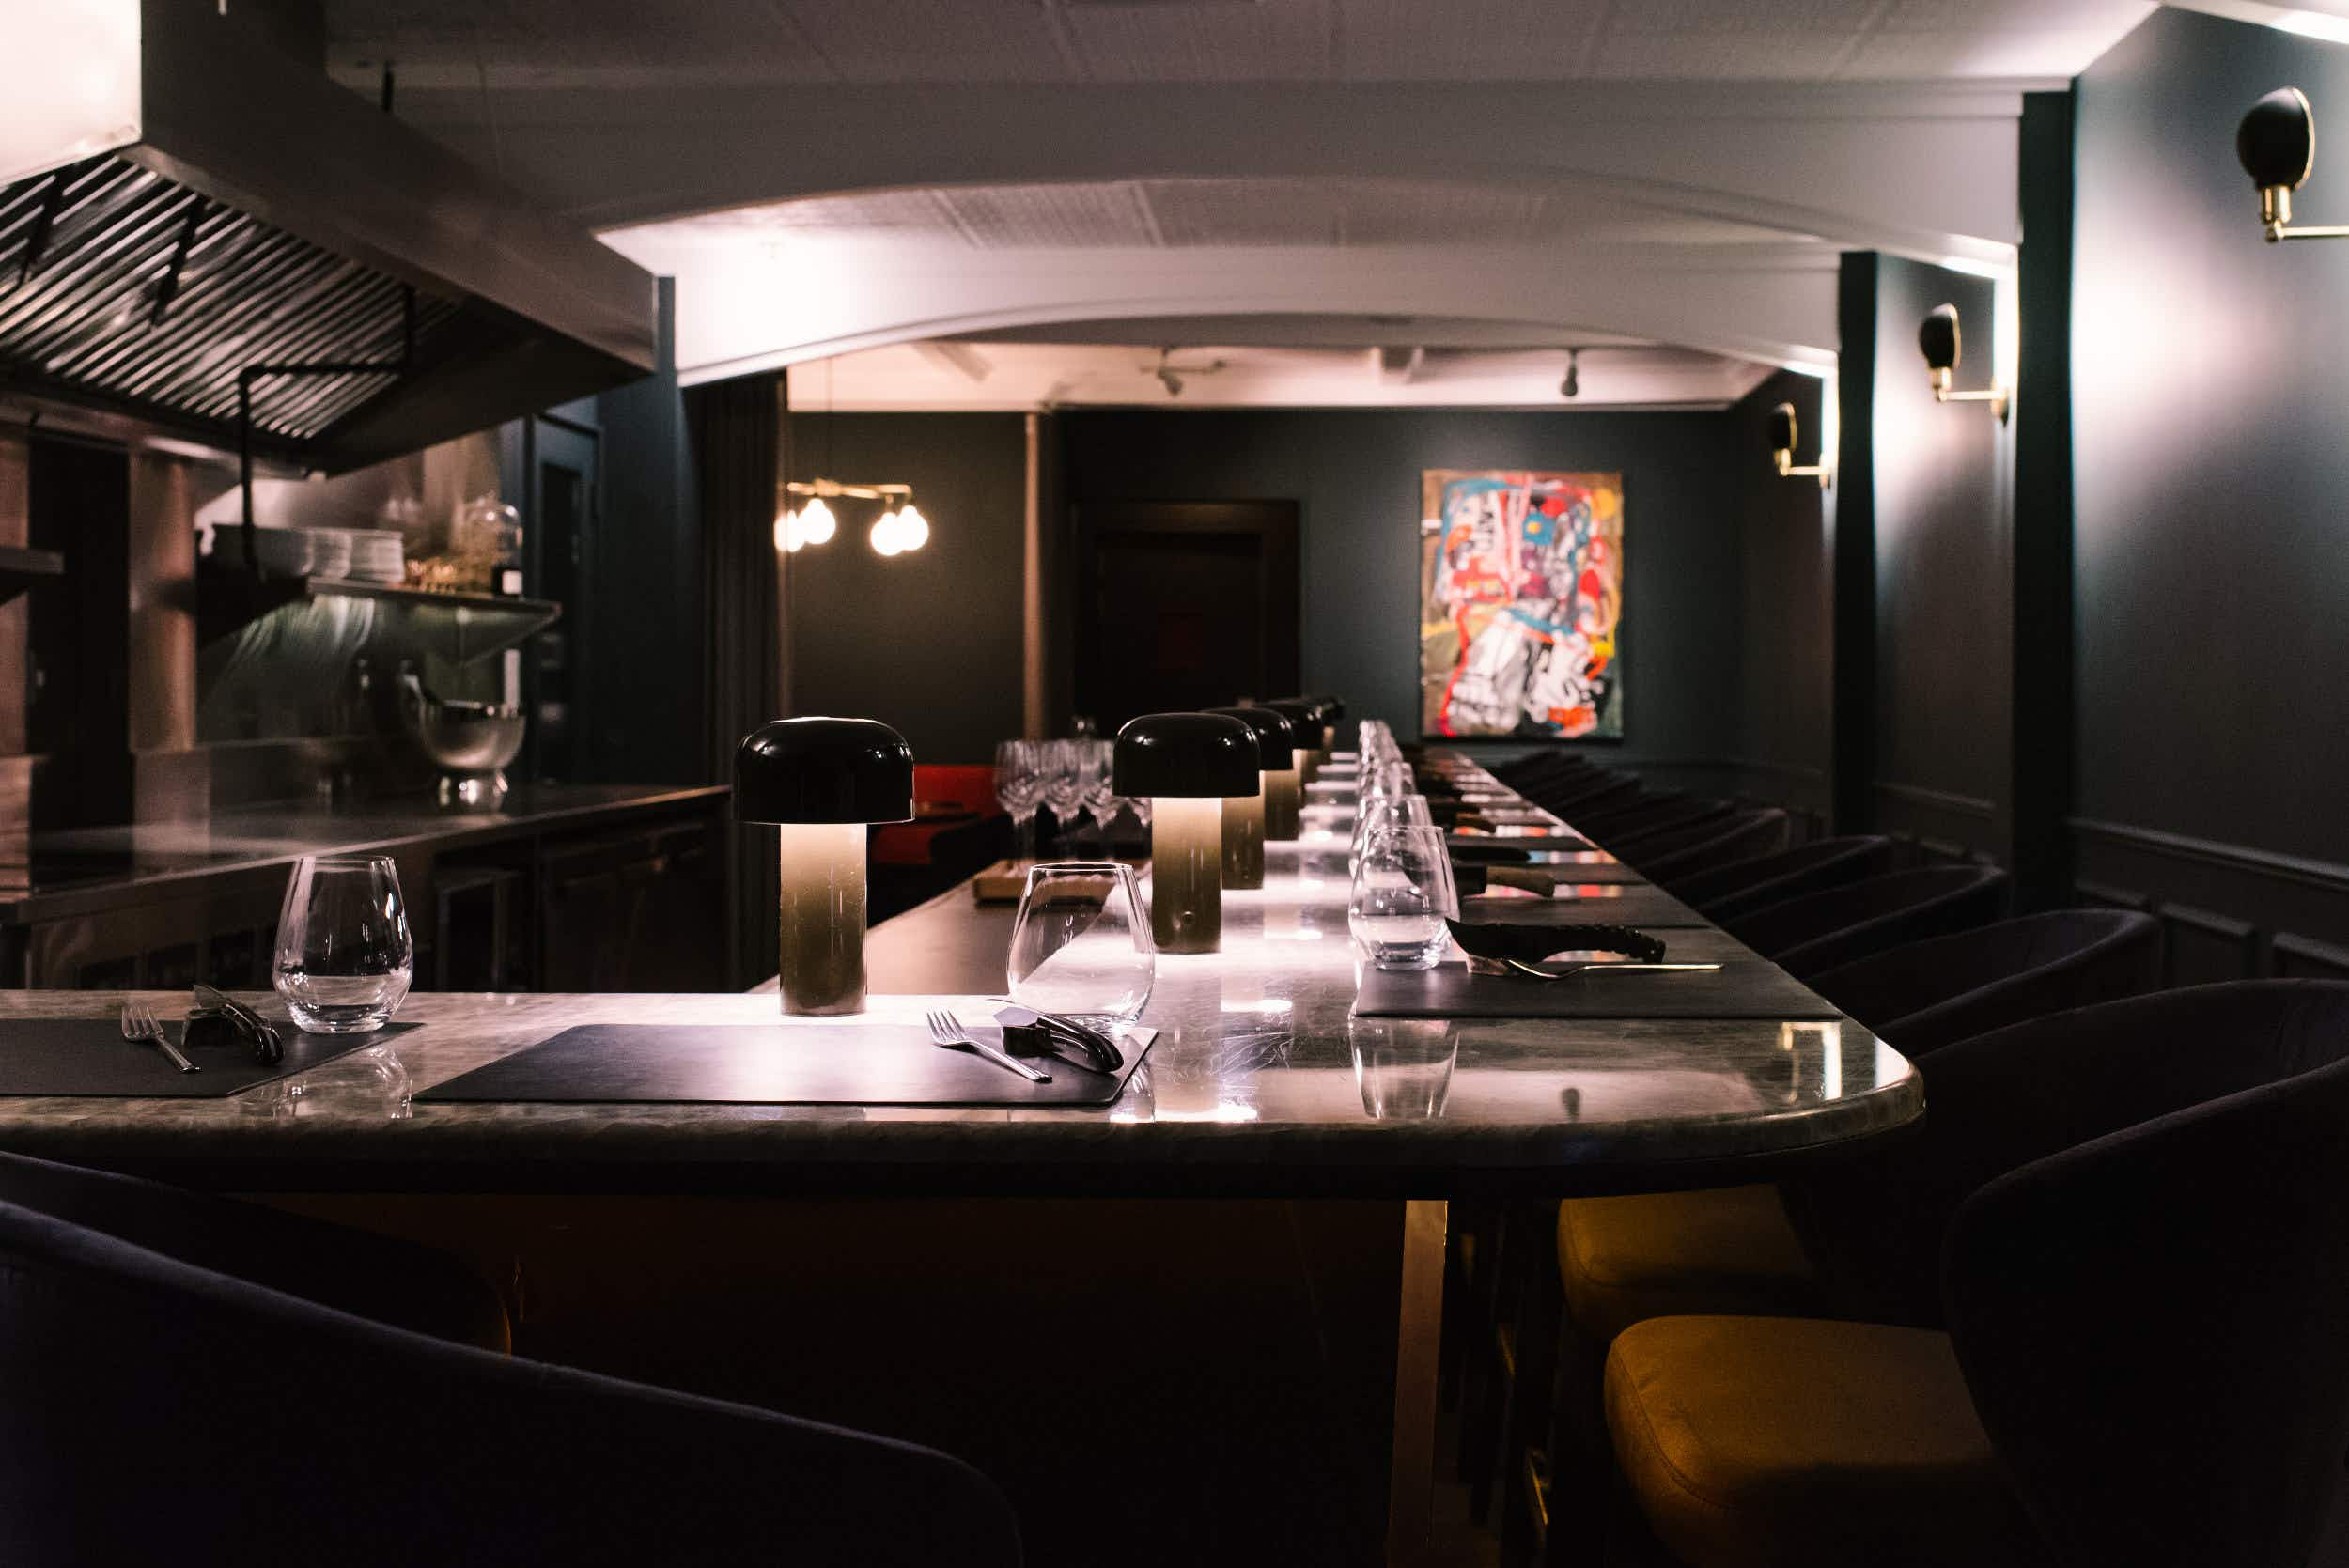 NYC's newest restaurant is hidden behind a painting in an art gallery